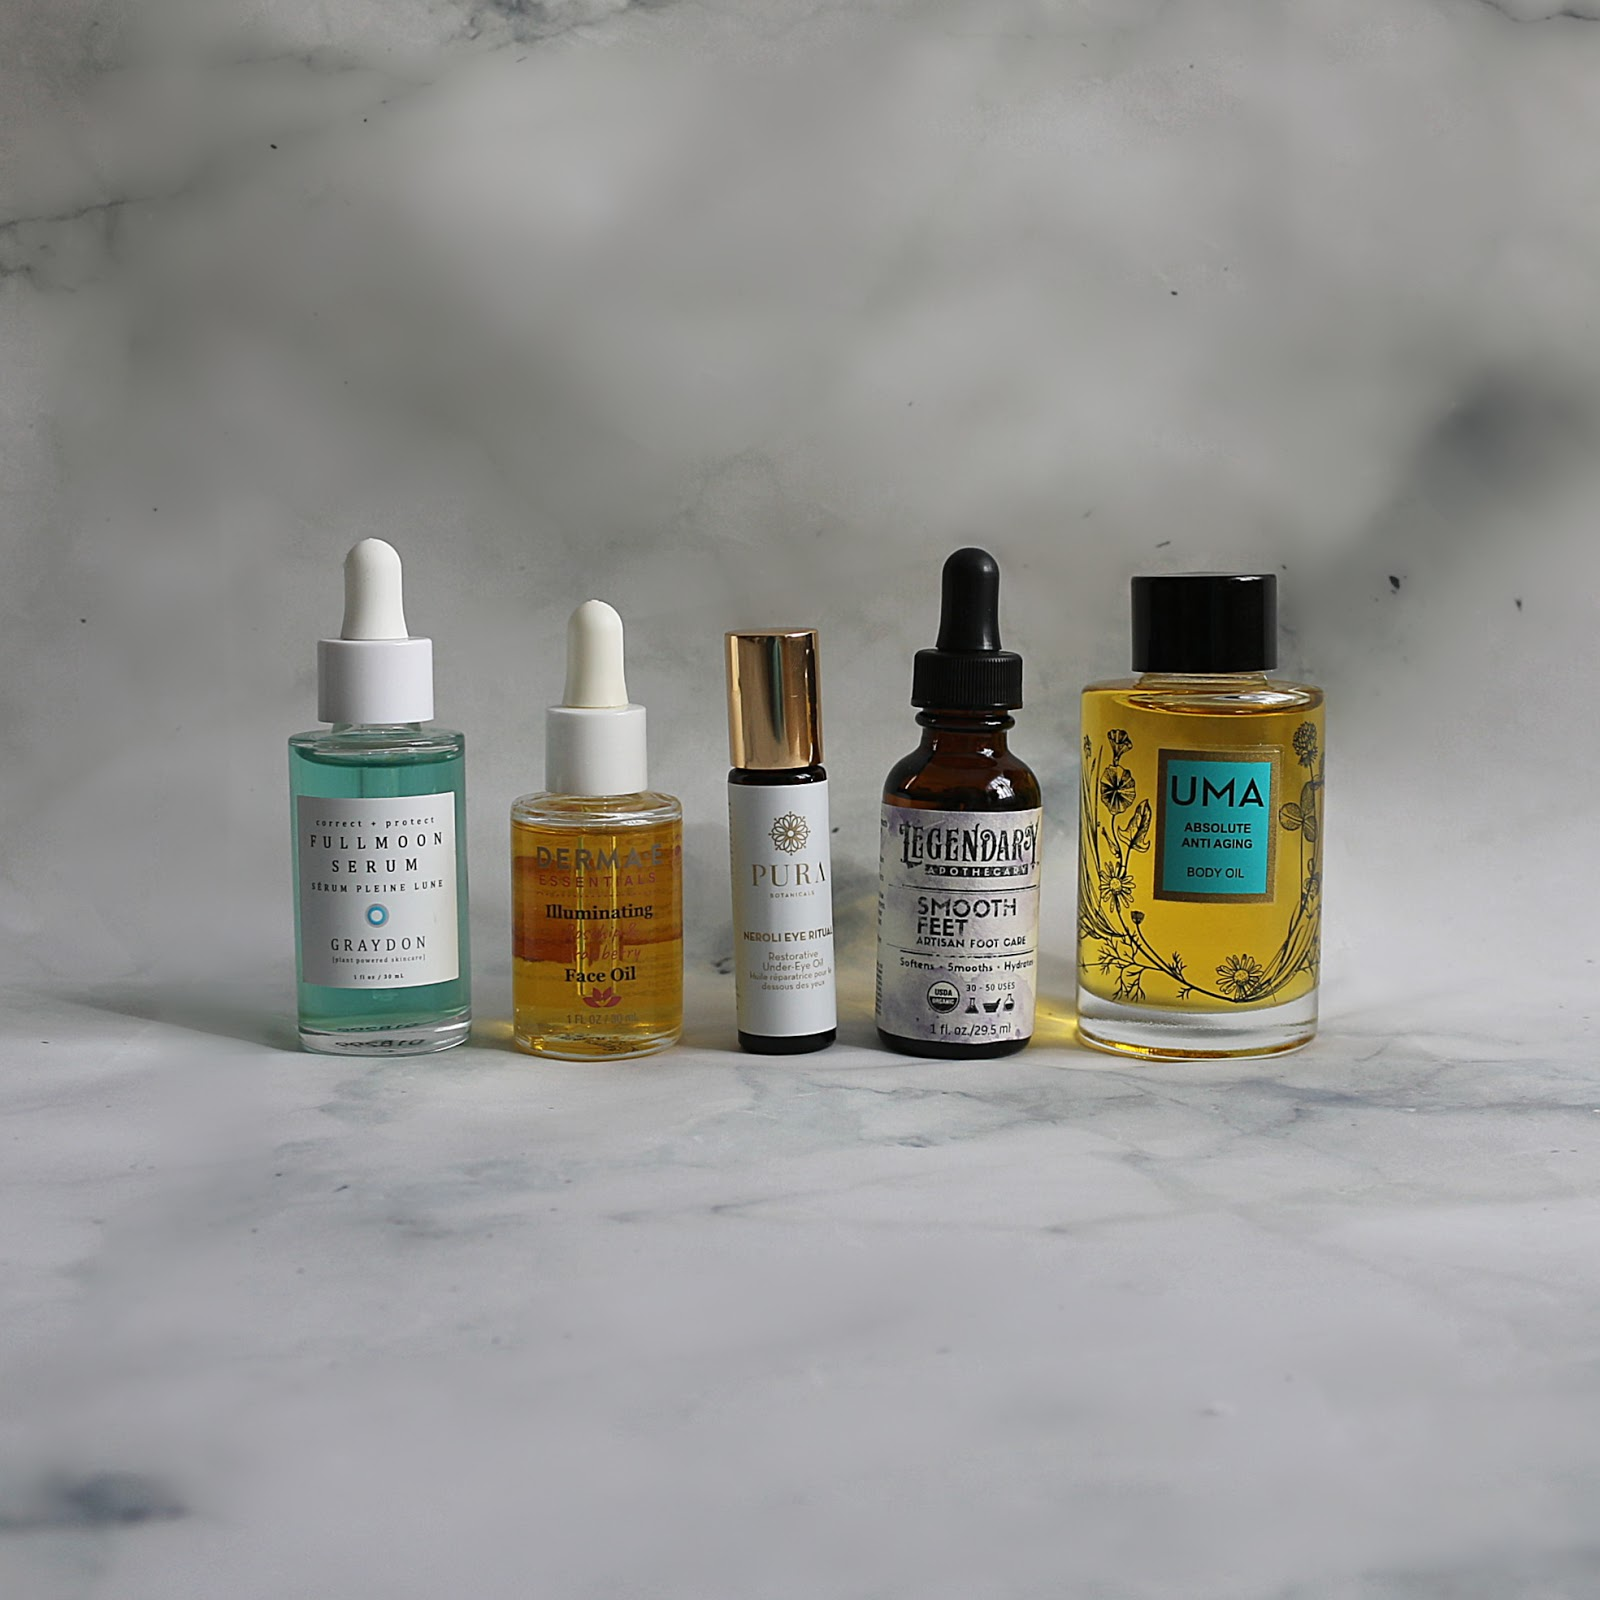 Go-To Serum Face Body Oil Blend Graydon Derma E Pura Botanicals